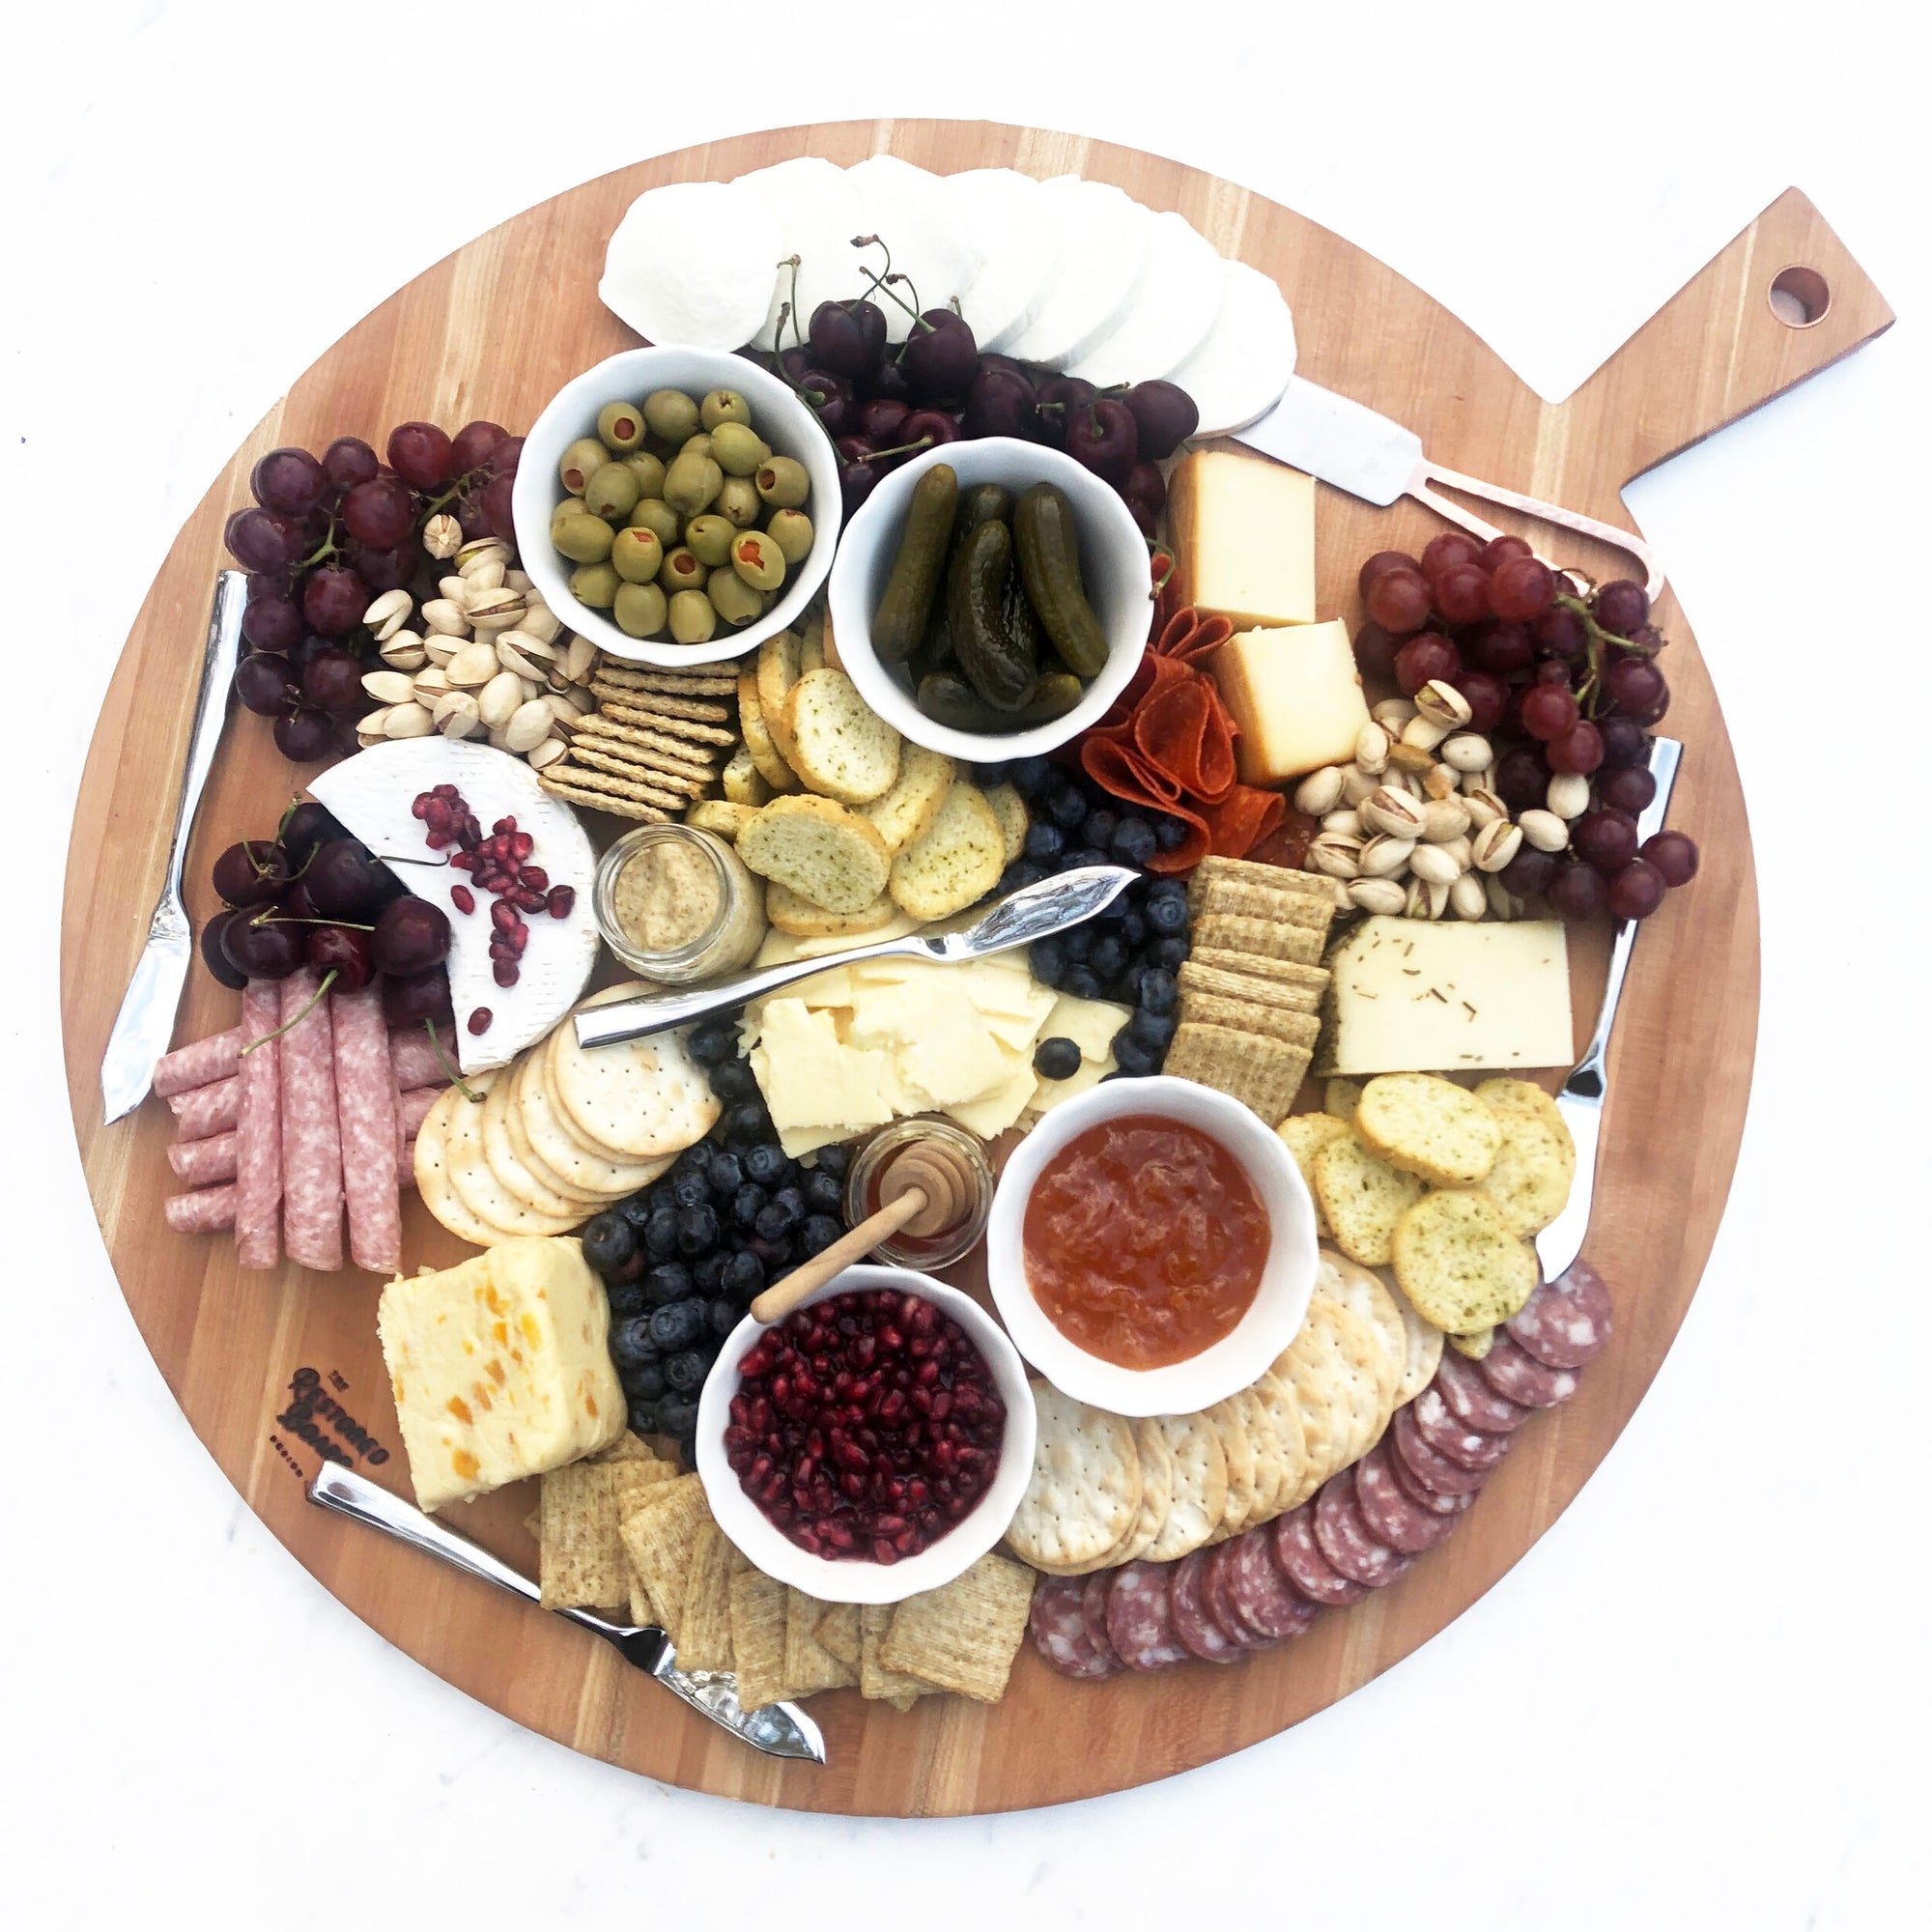 7 Easy Steps To Constructing A Charcuterie Board